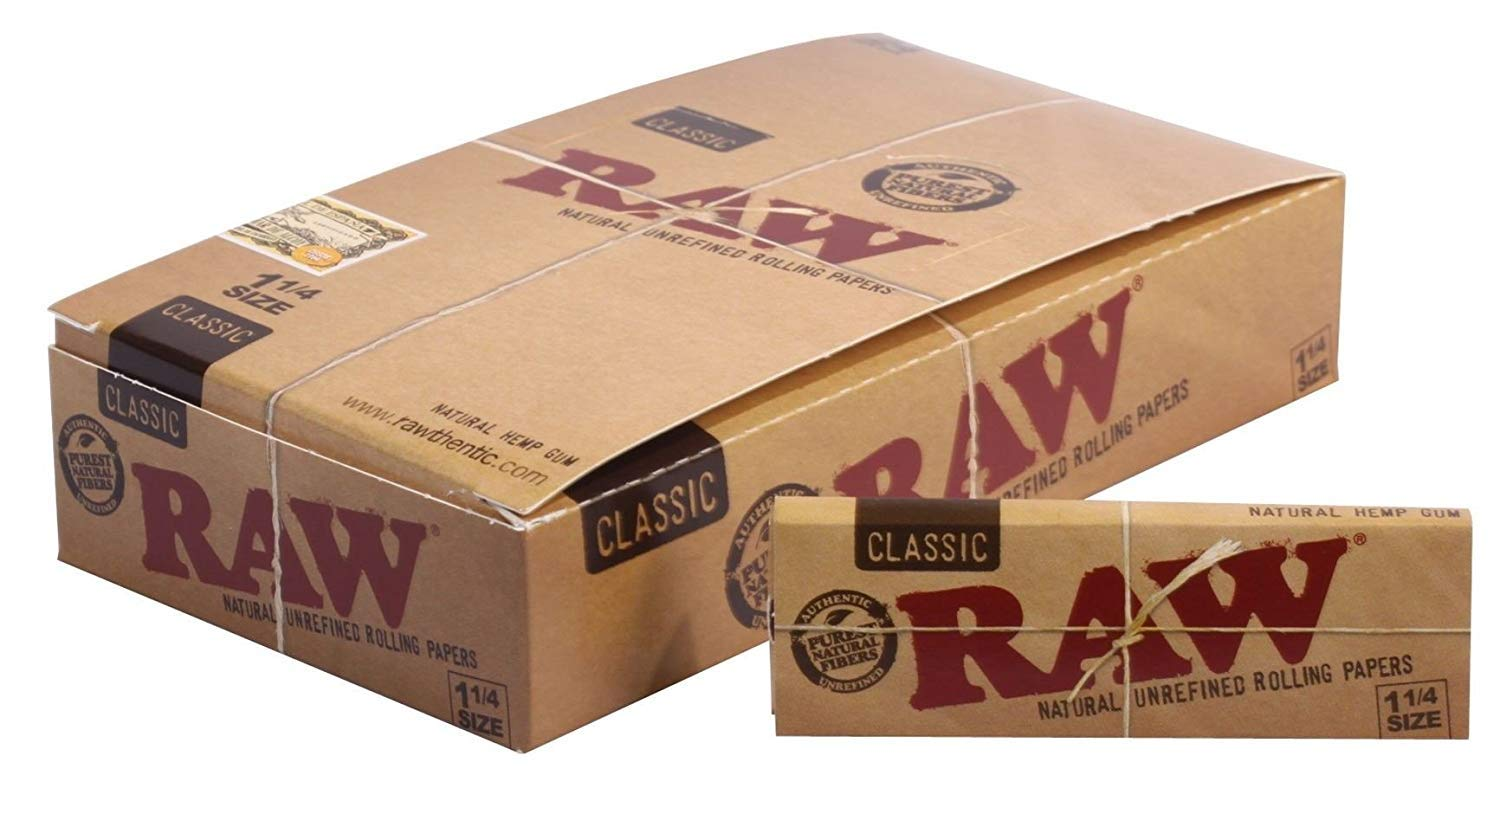 Raw Unrefined Classic 1.25 1 1/4 Size Cigarette Rolling Papers Full Box of 24 Packs by Raw